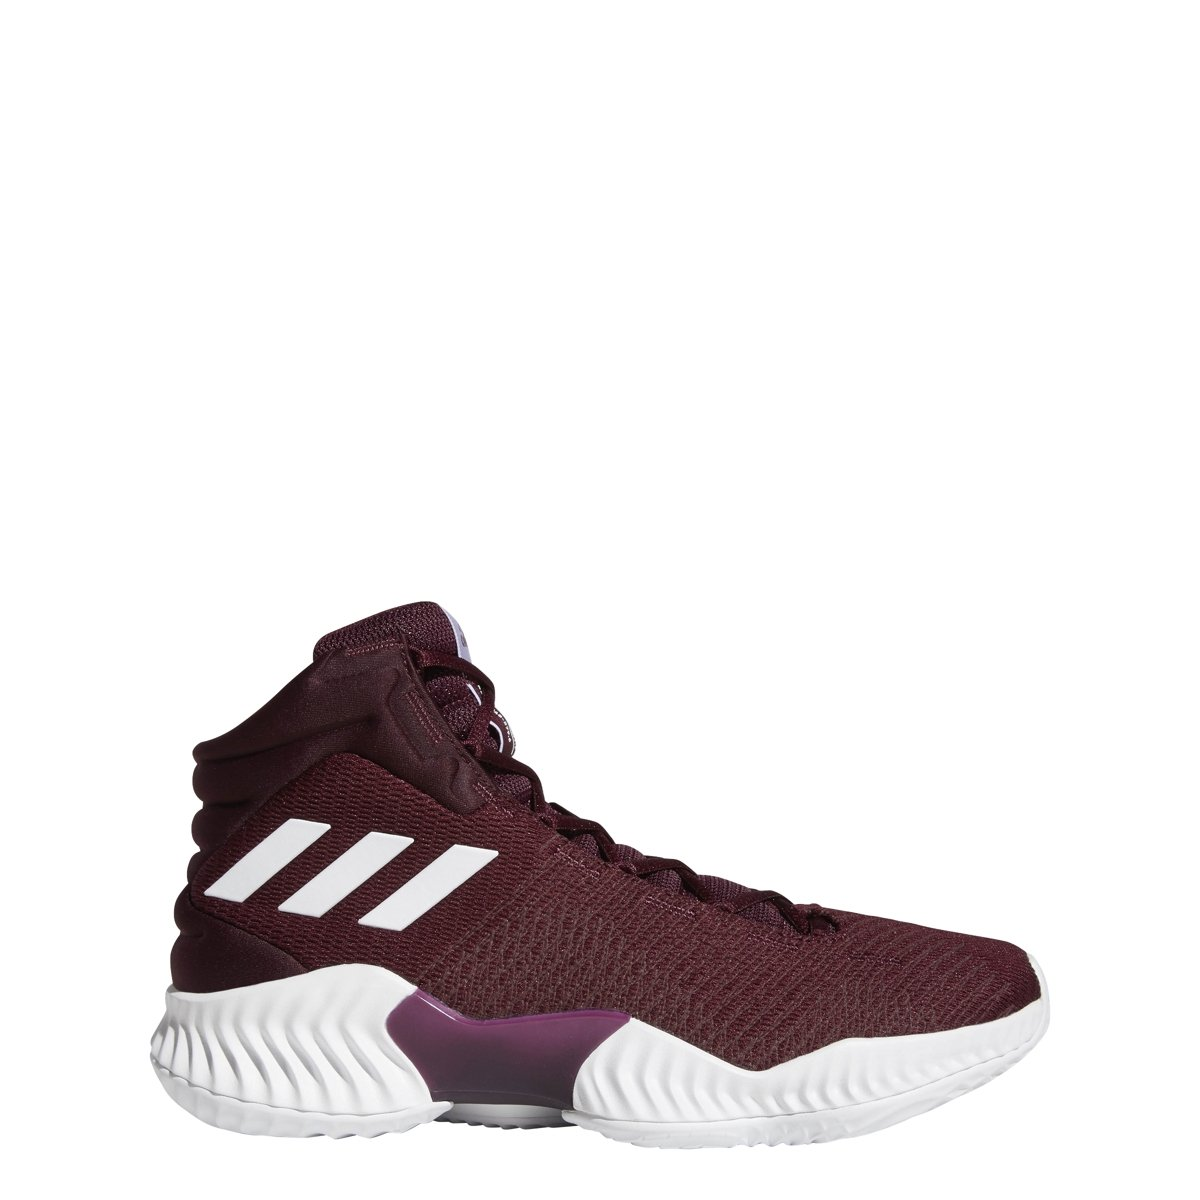 adidas Men's Pro Bounce 2018 Basketball Shoe, White/Maroon, 4 M US